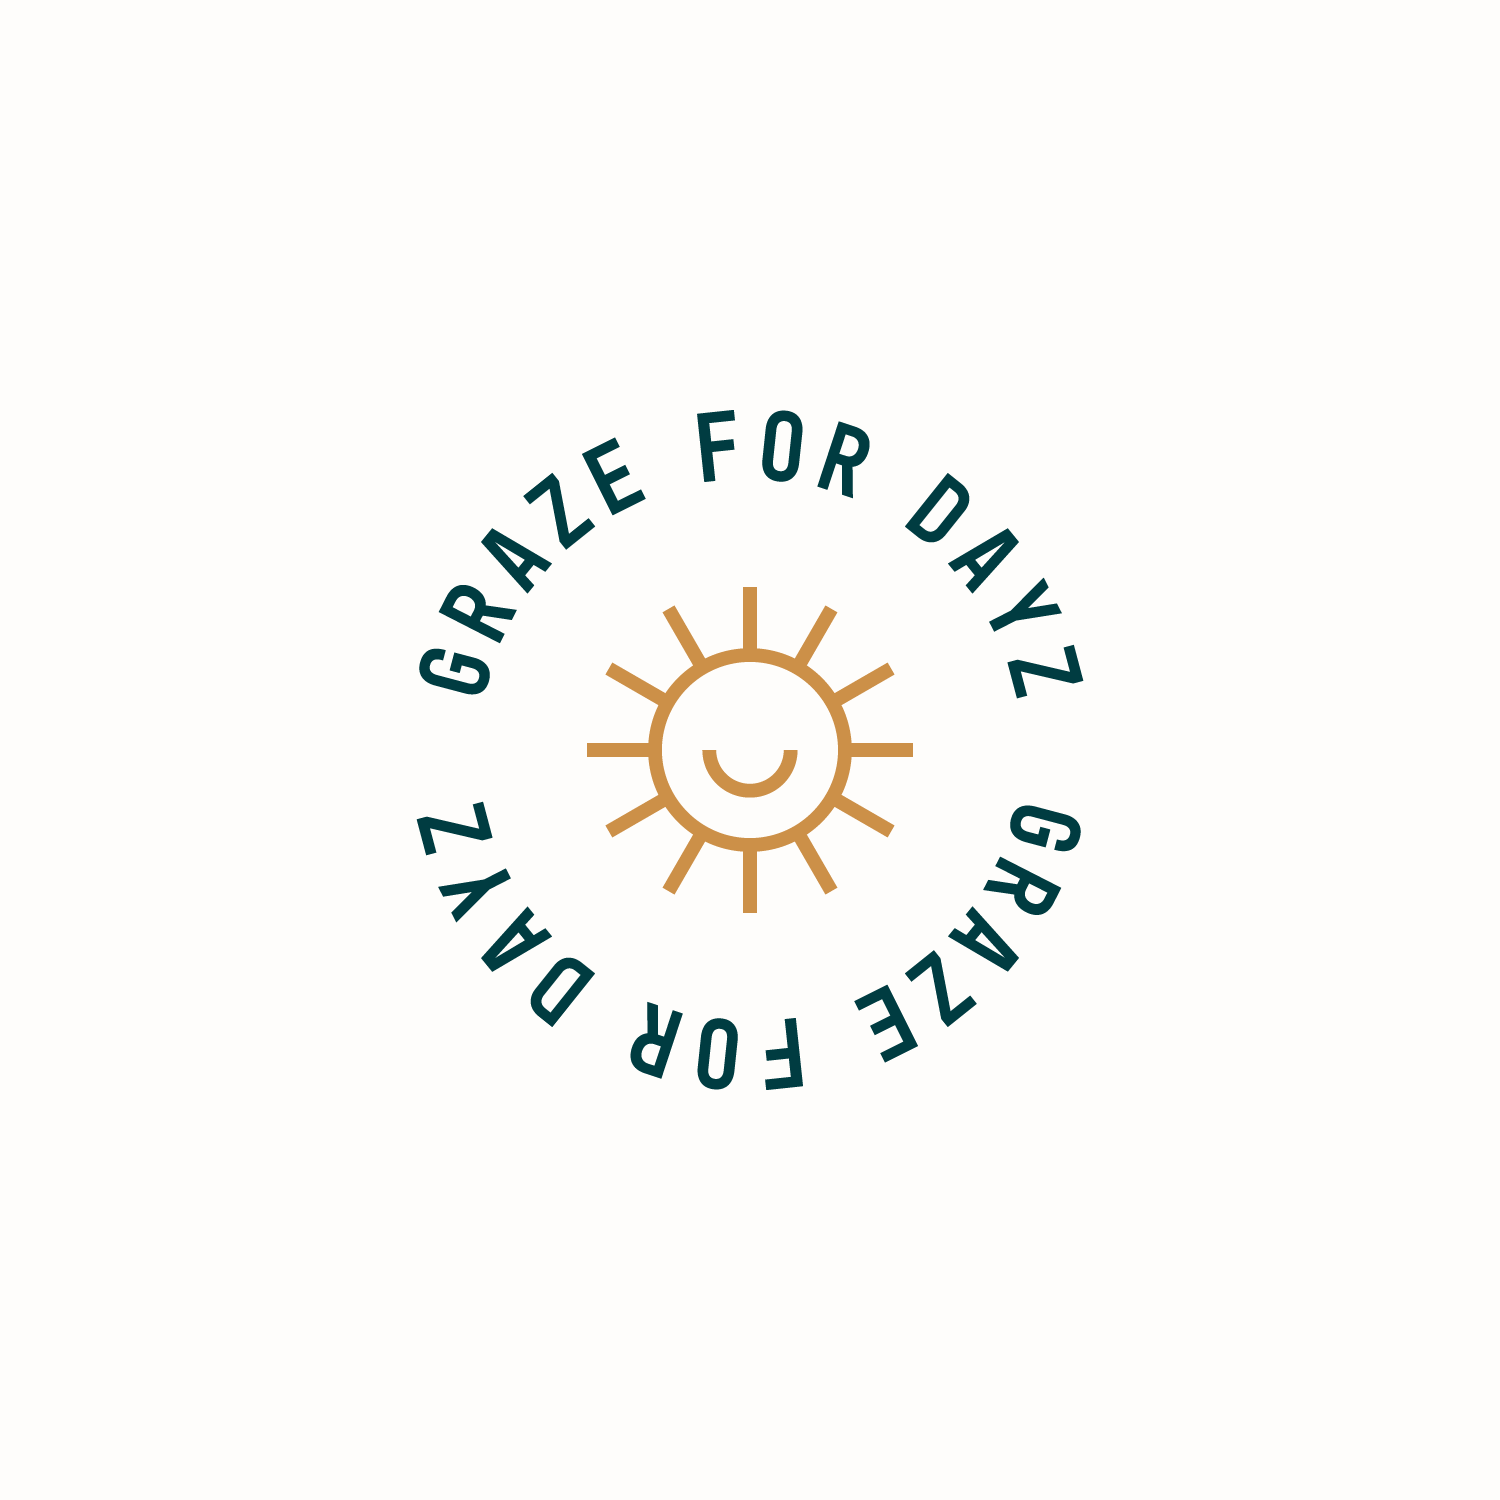 Circular 'Graze for Dayz' badge with a cute sun icon in the center for Grazy